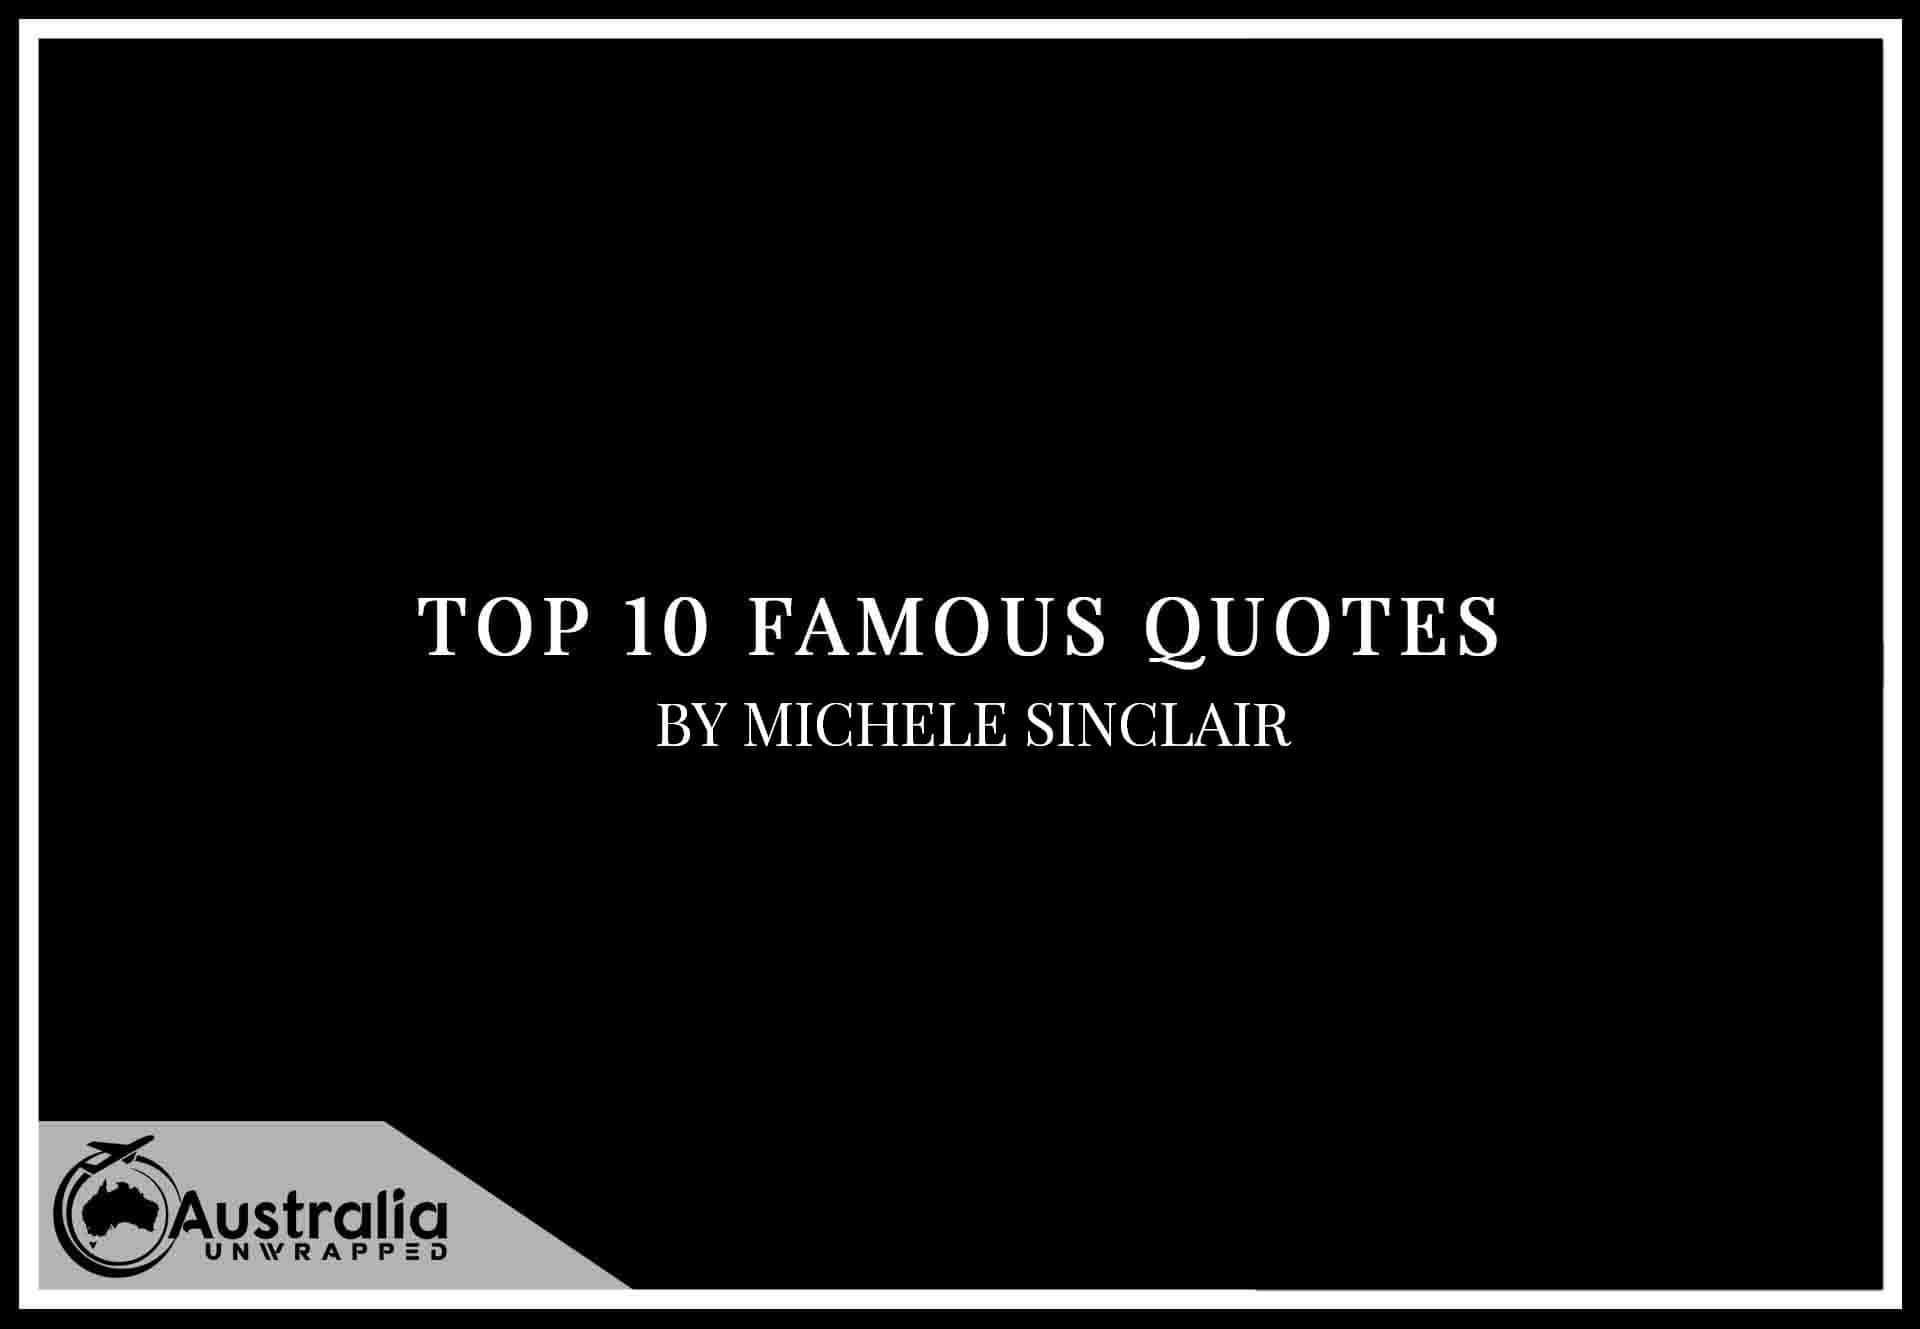 Top 10 Famous Quotes by Author Michele Sinclair